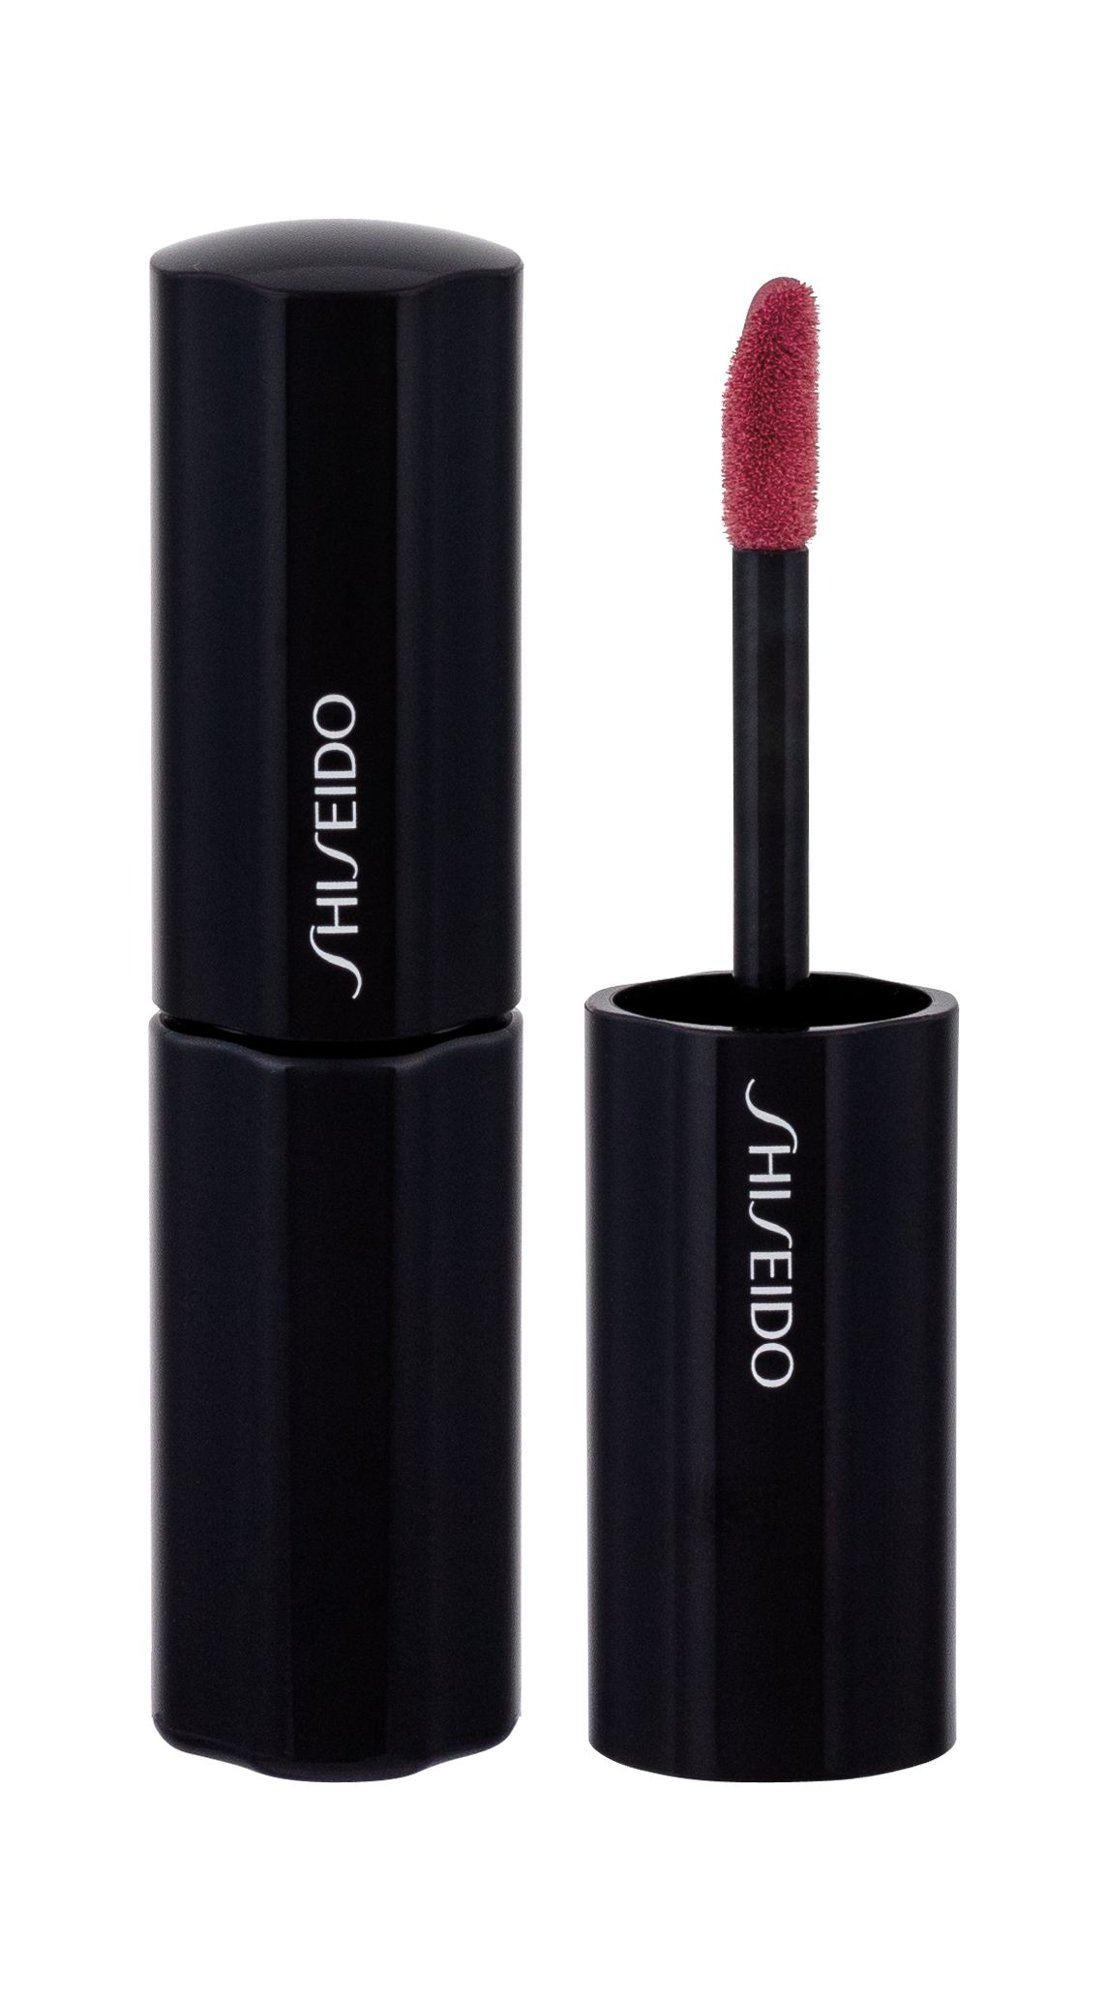 Shiseido Lacquer Rouge Lipstick 6ml RD529